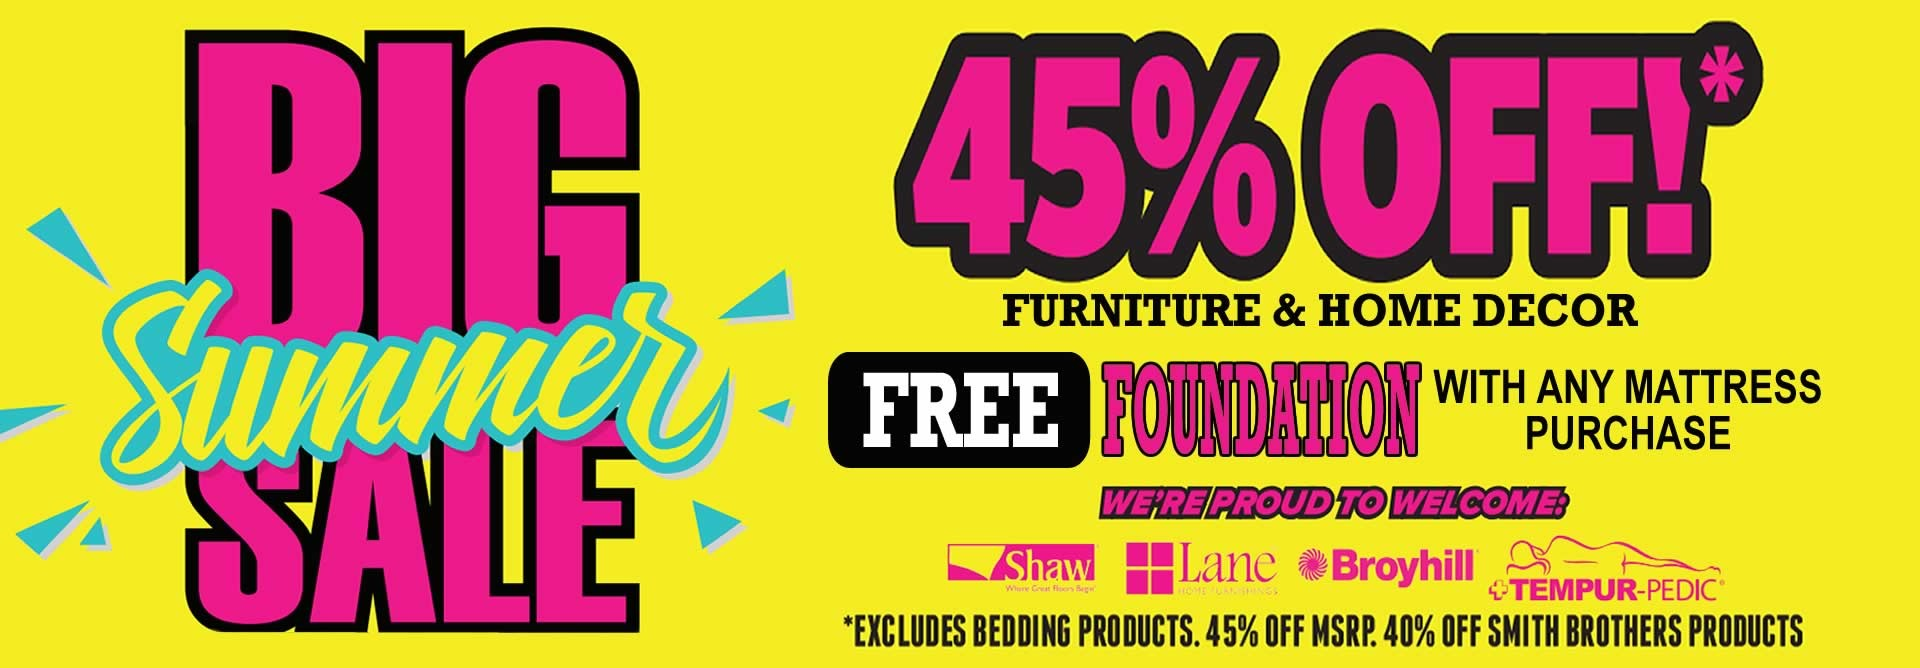 Big Summer Furniture Sale